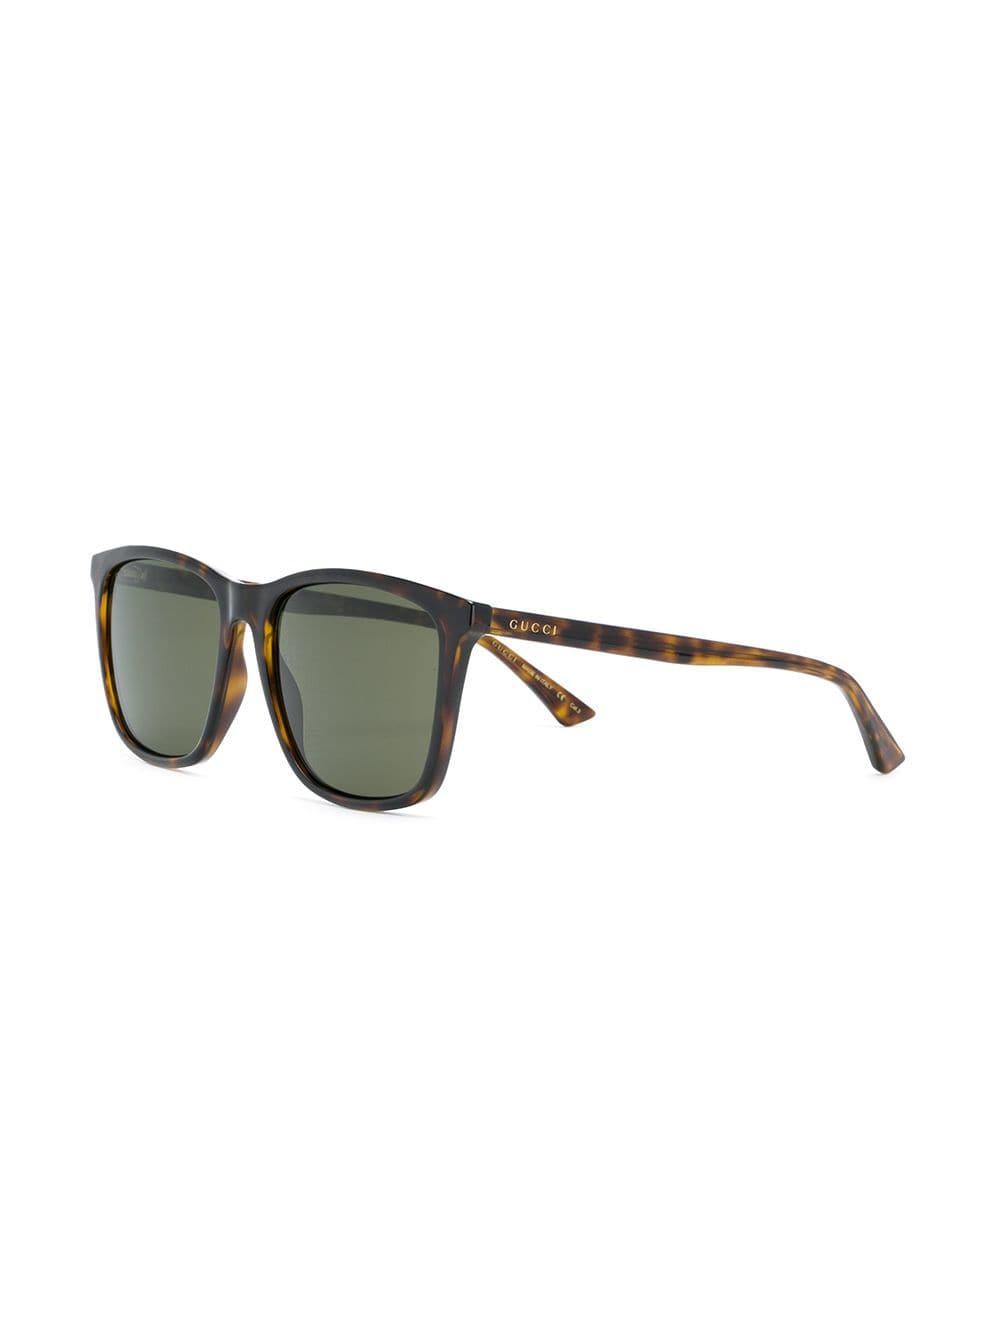 30adc4726241 Gucci Square Tinted Sunglasses in Brown - Lyst